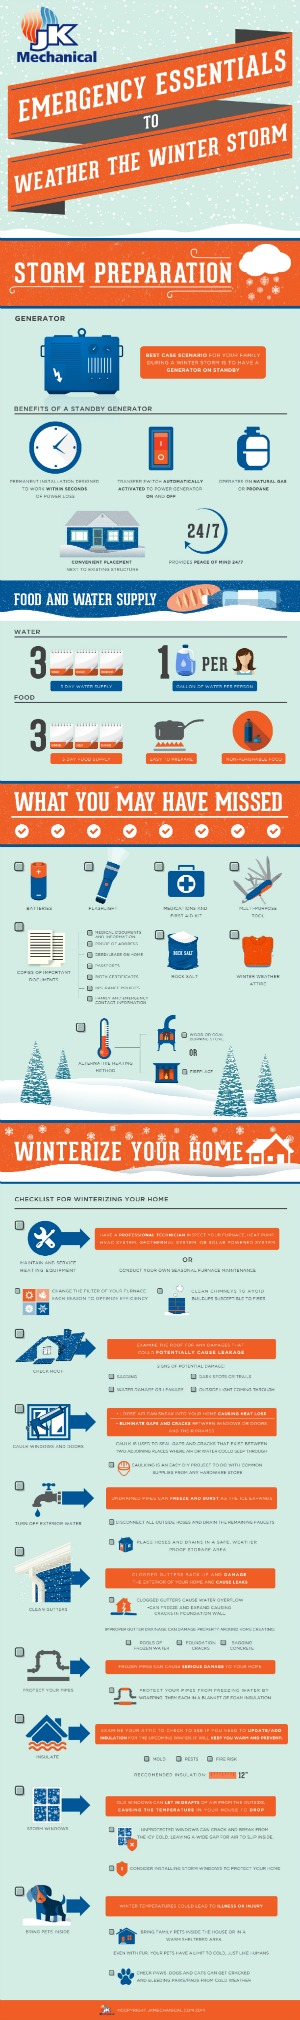 Home Security Tips For Blustery Conditions